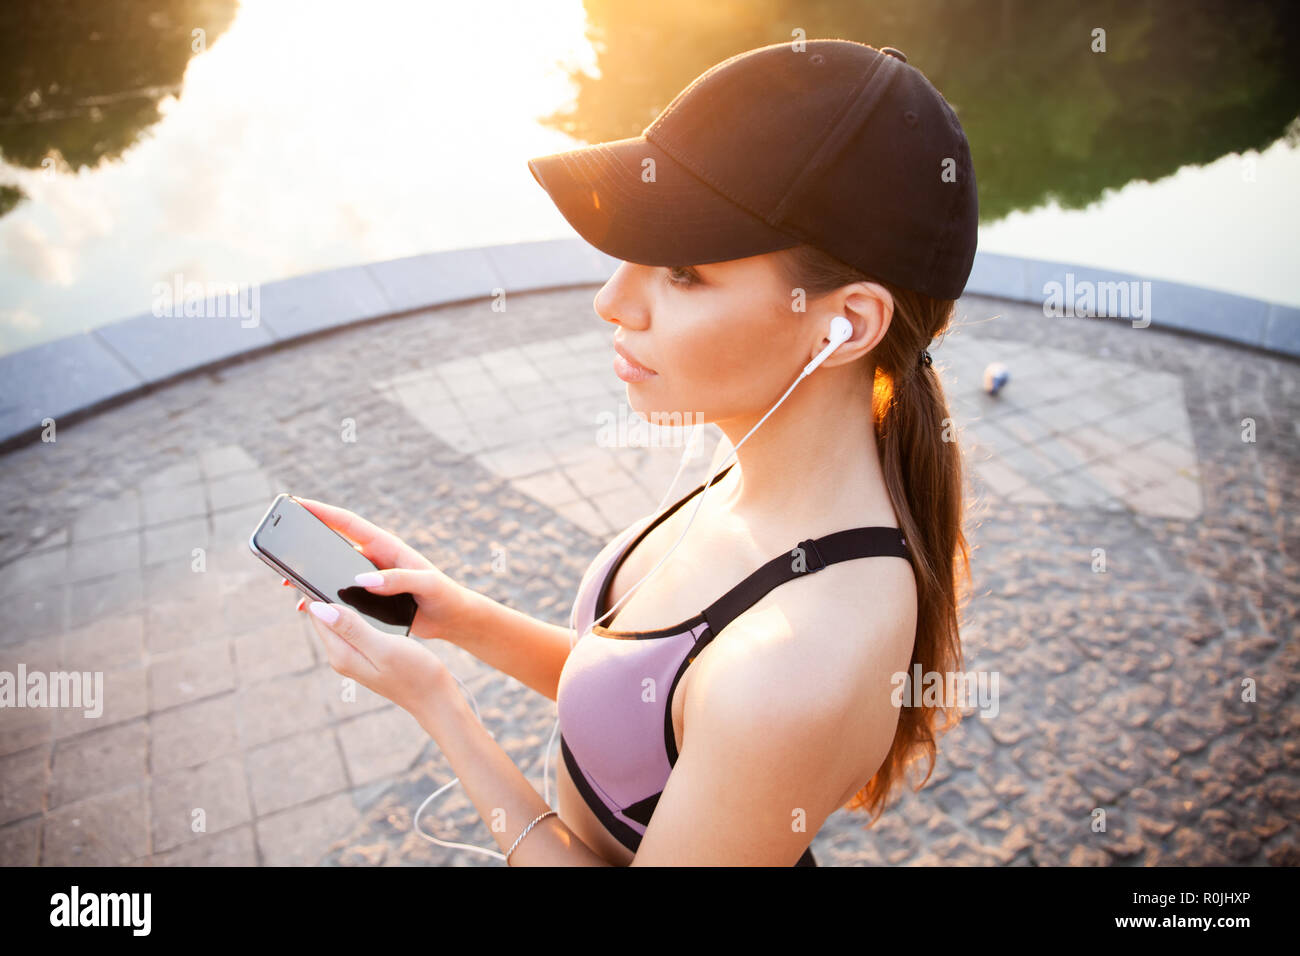 Tired fitness woman sweating taking a break listening to music on phone after difficult training. Young woman listening to music with earphones on smart phone app for fitness motivation. - Stock Image